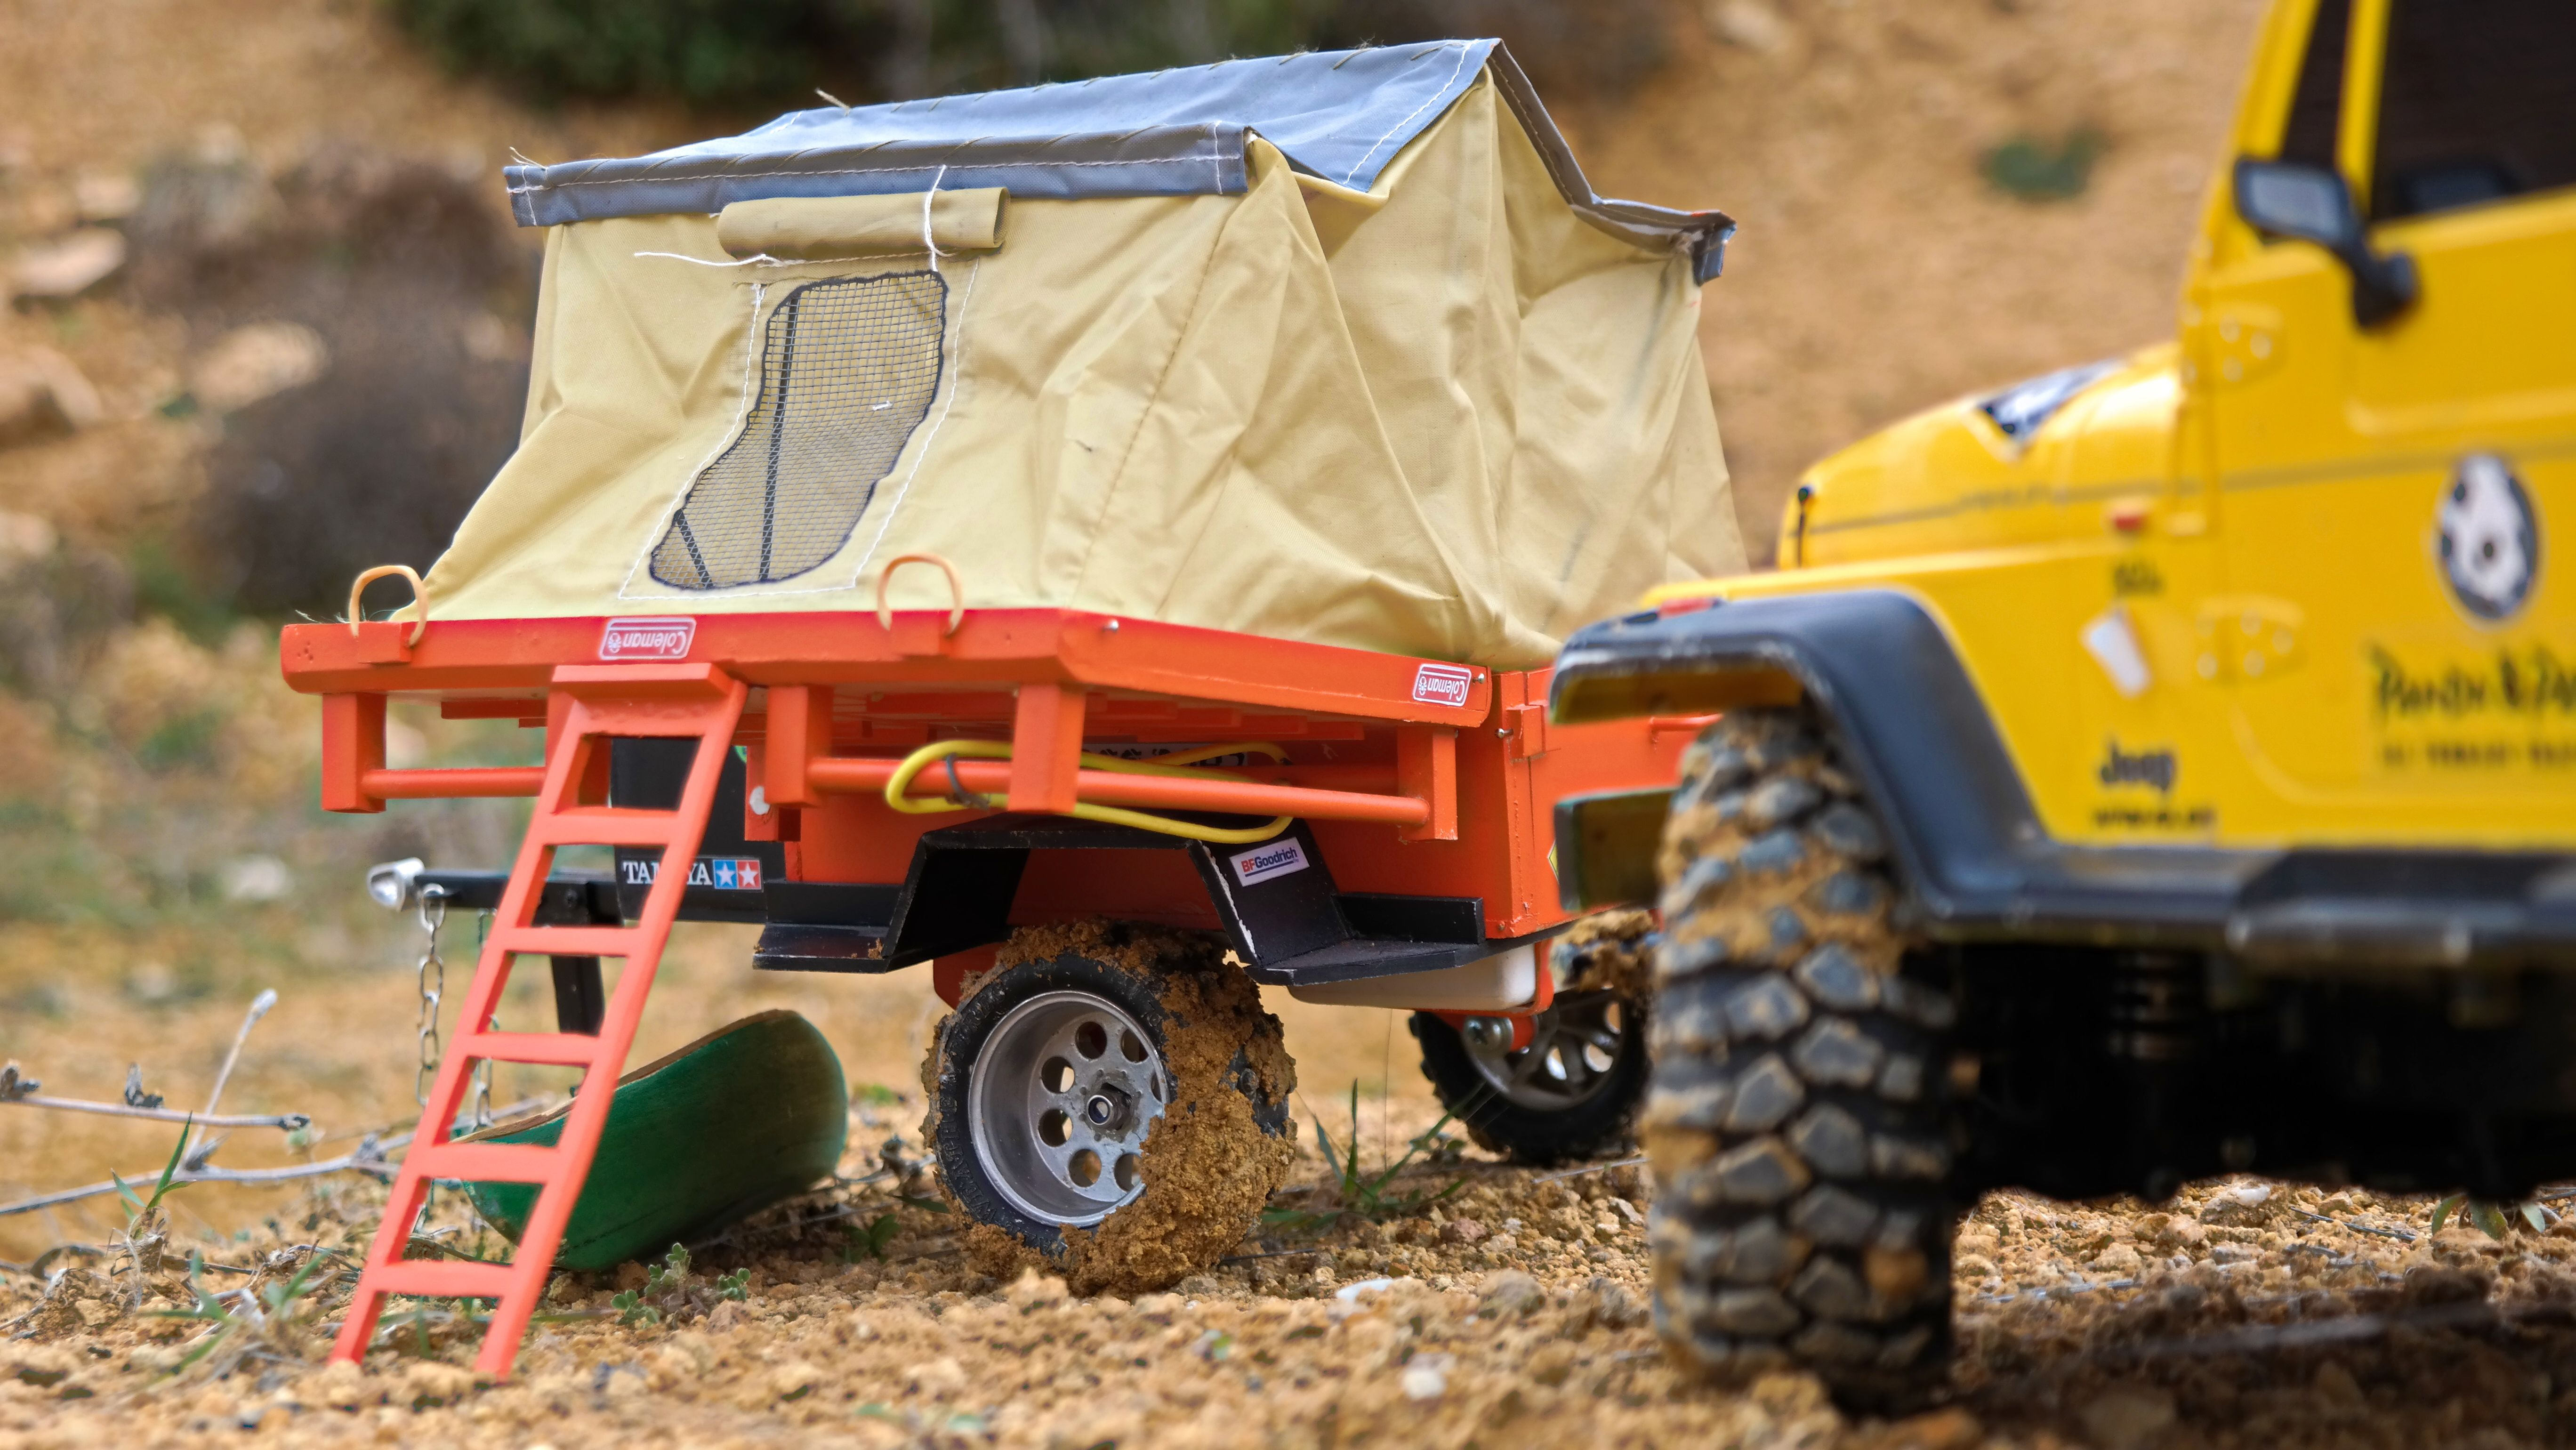 Rc scale 1 10 tamiya cc 01 jeep wrangler with custom camper trailer